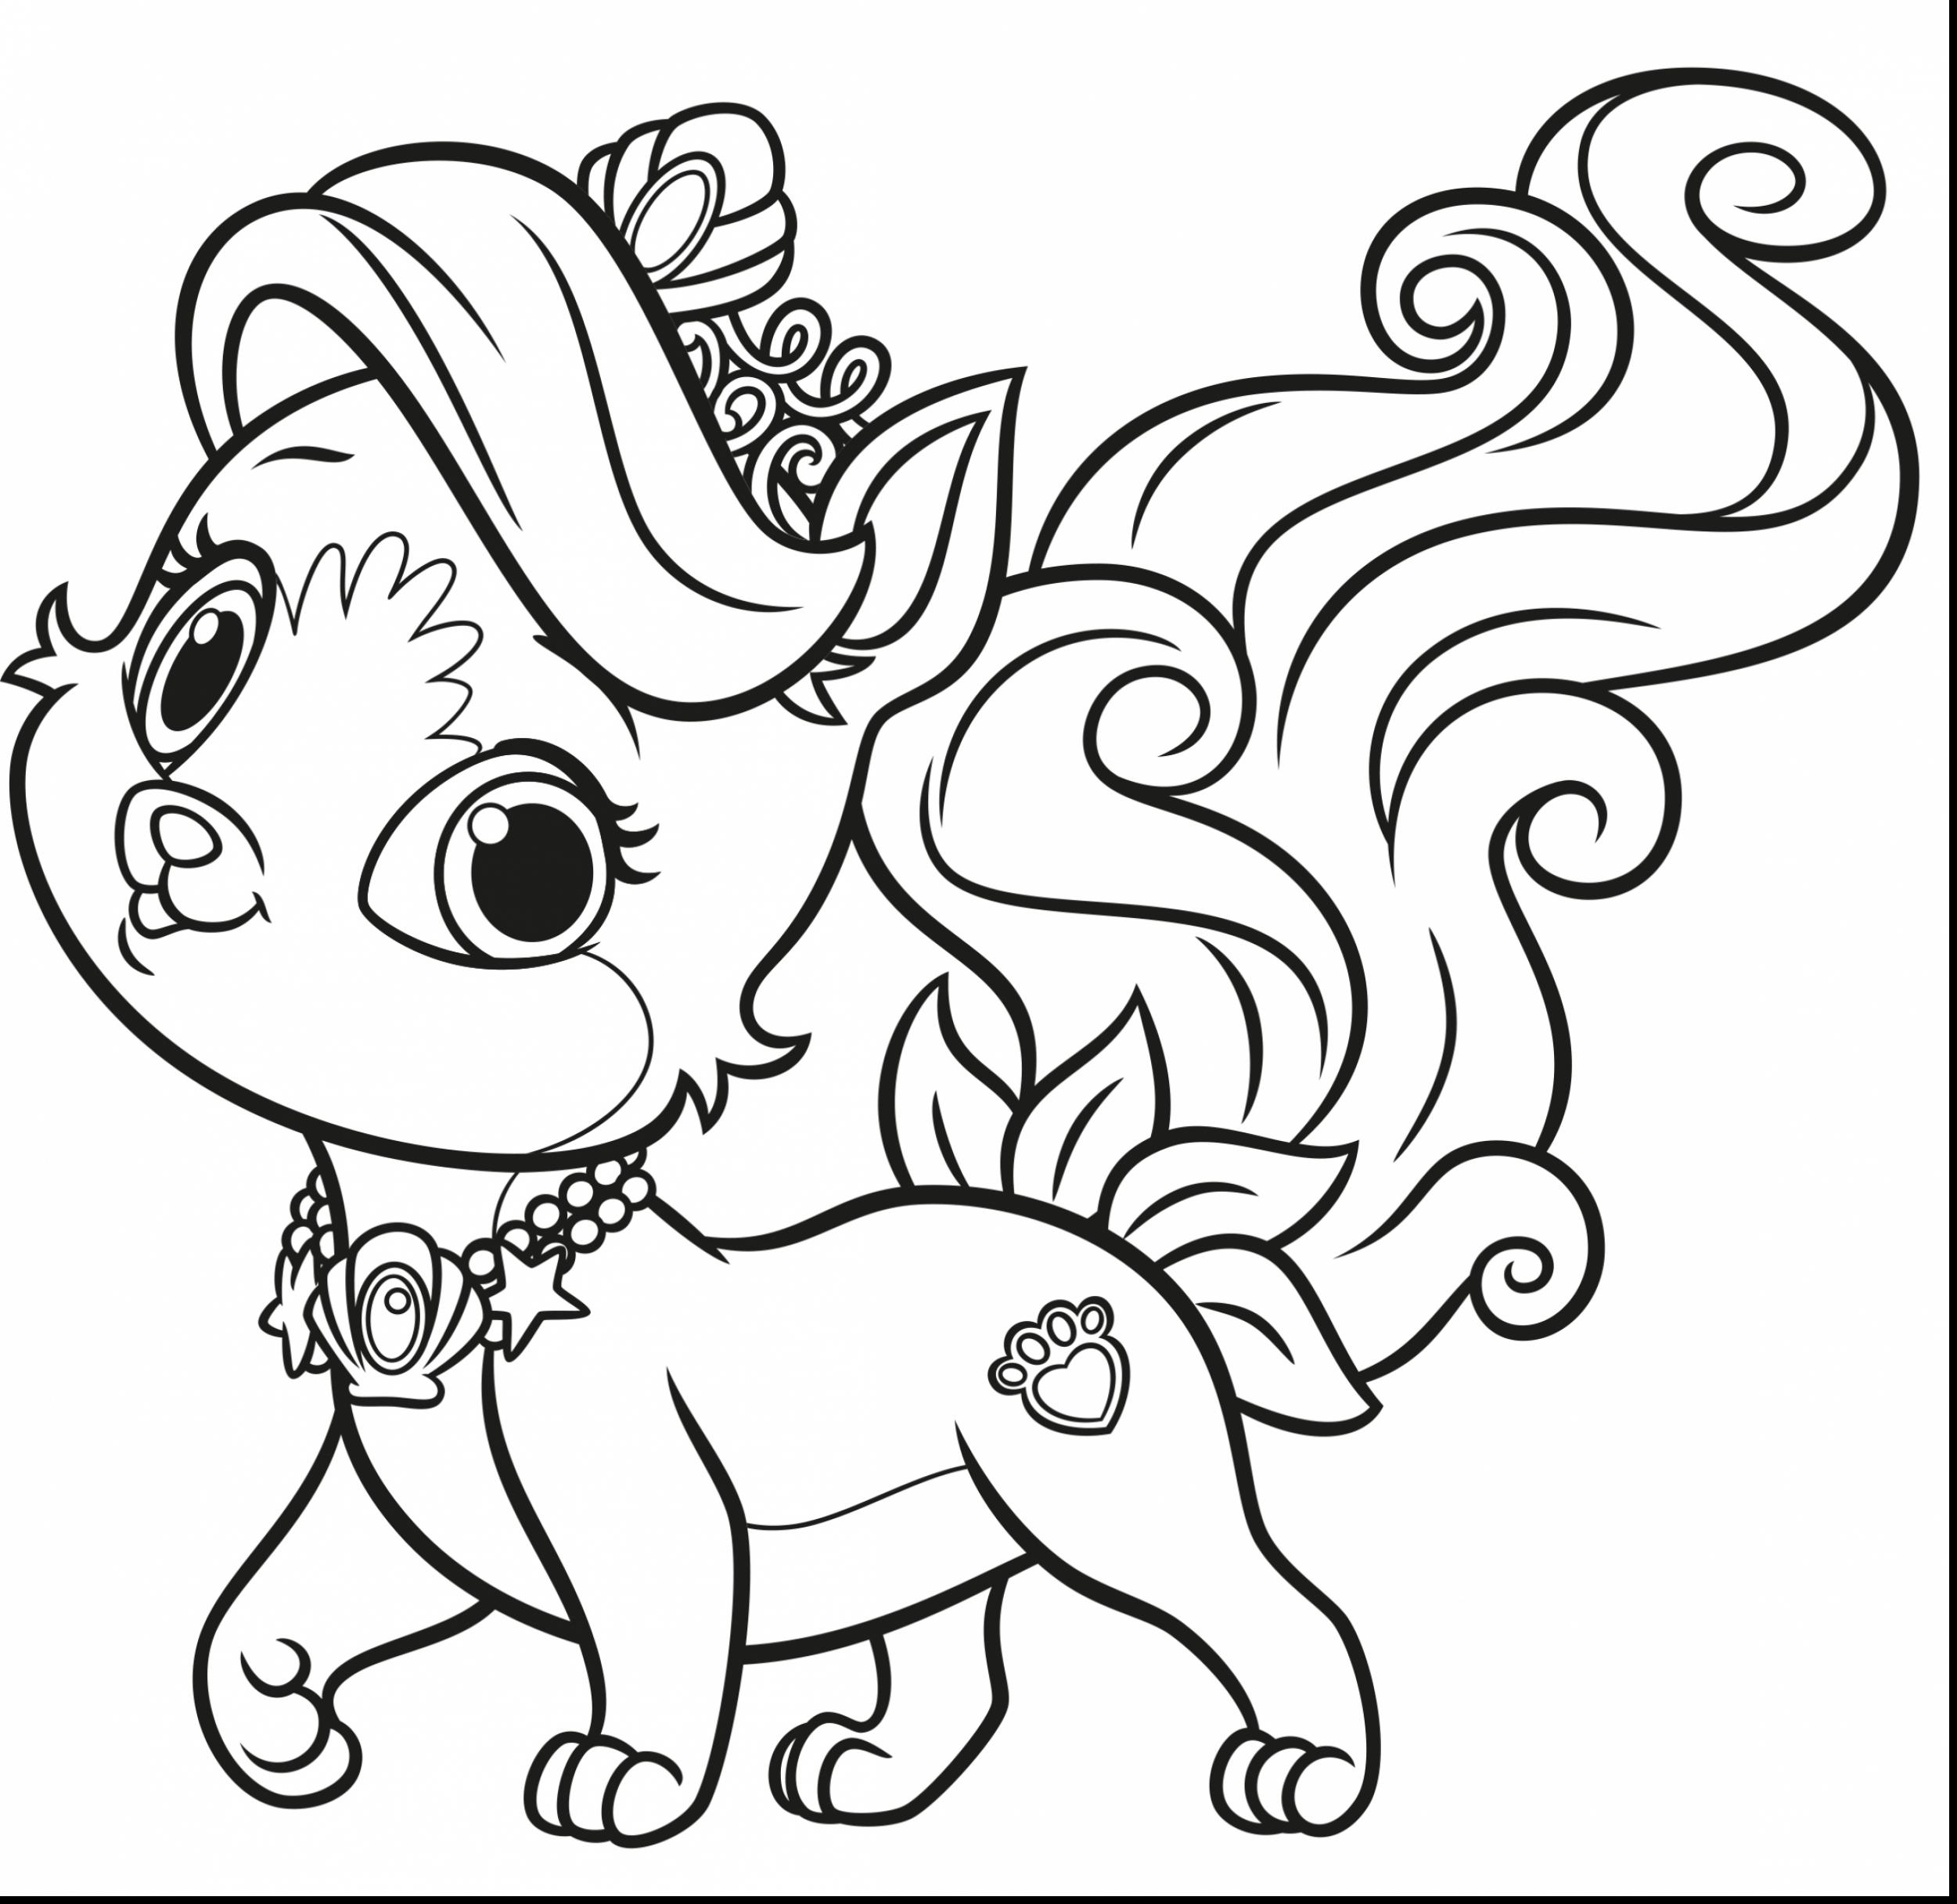 2501x2433 Palace Pets Coloring Pages Rawesome Co For Alluring Princess